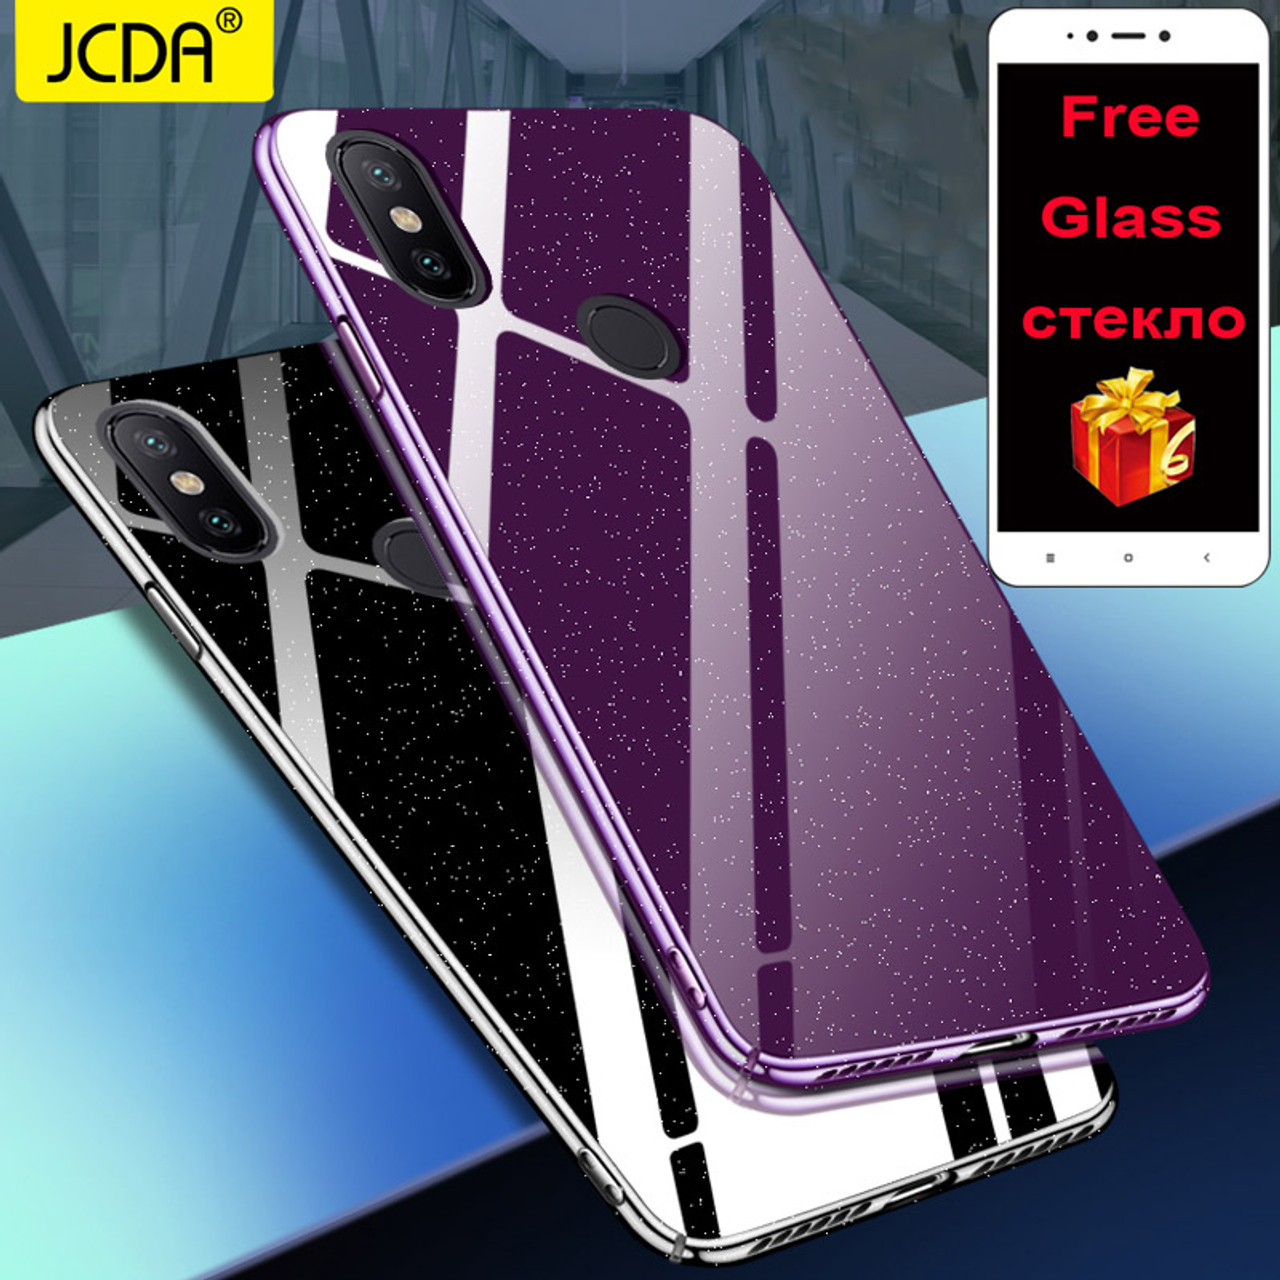 quality design 19356 b71ed Xiaomi Mi 8 SE case Cover Redmi 5 plus Case JCDA Crystal Back mi a1 a2  Cover redmi note 5a prime 4 4X 5S MIX 2S S2 6A 6 6x case